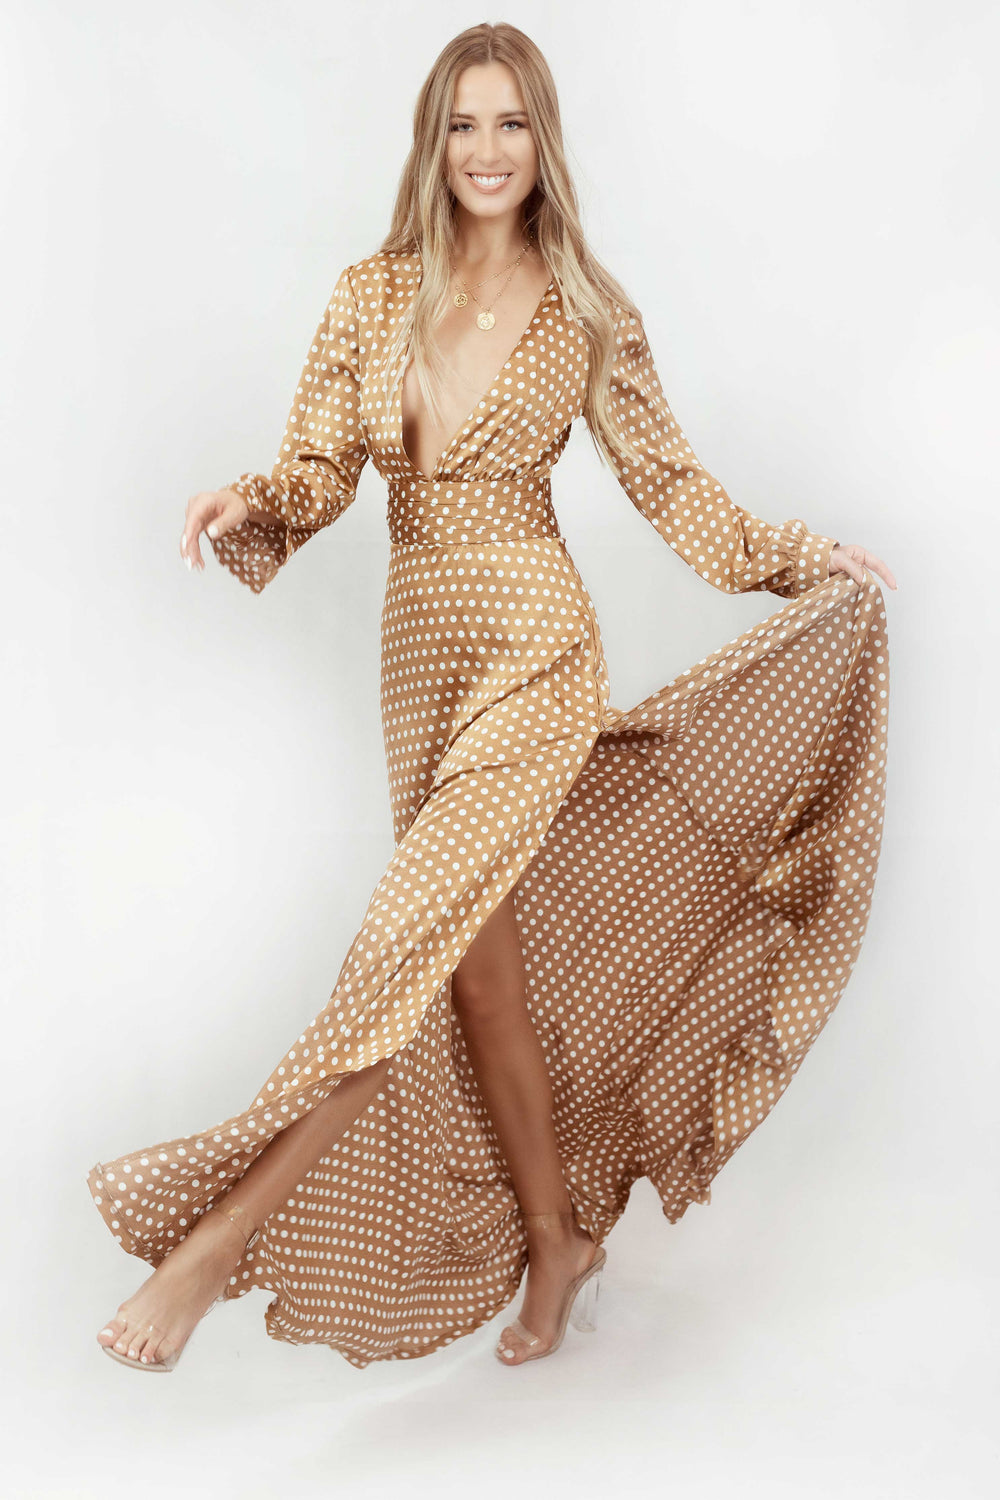 KESHA MAXI DRESS - Chic Le Frique